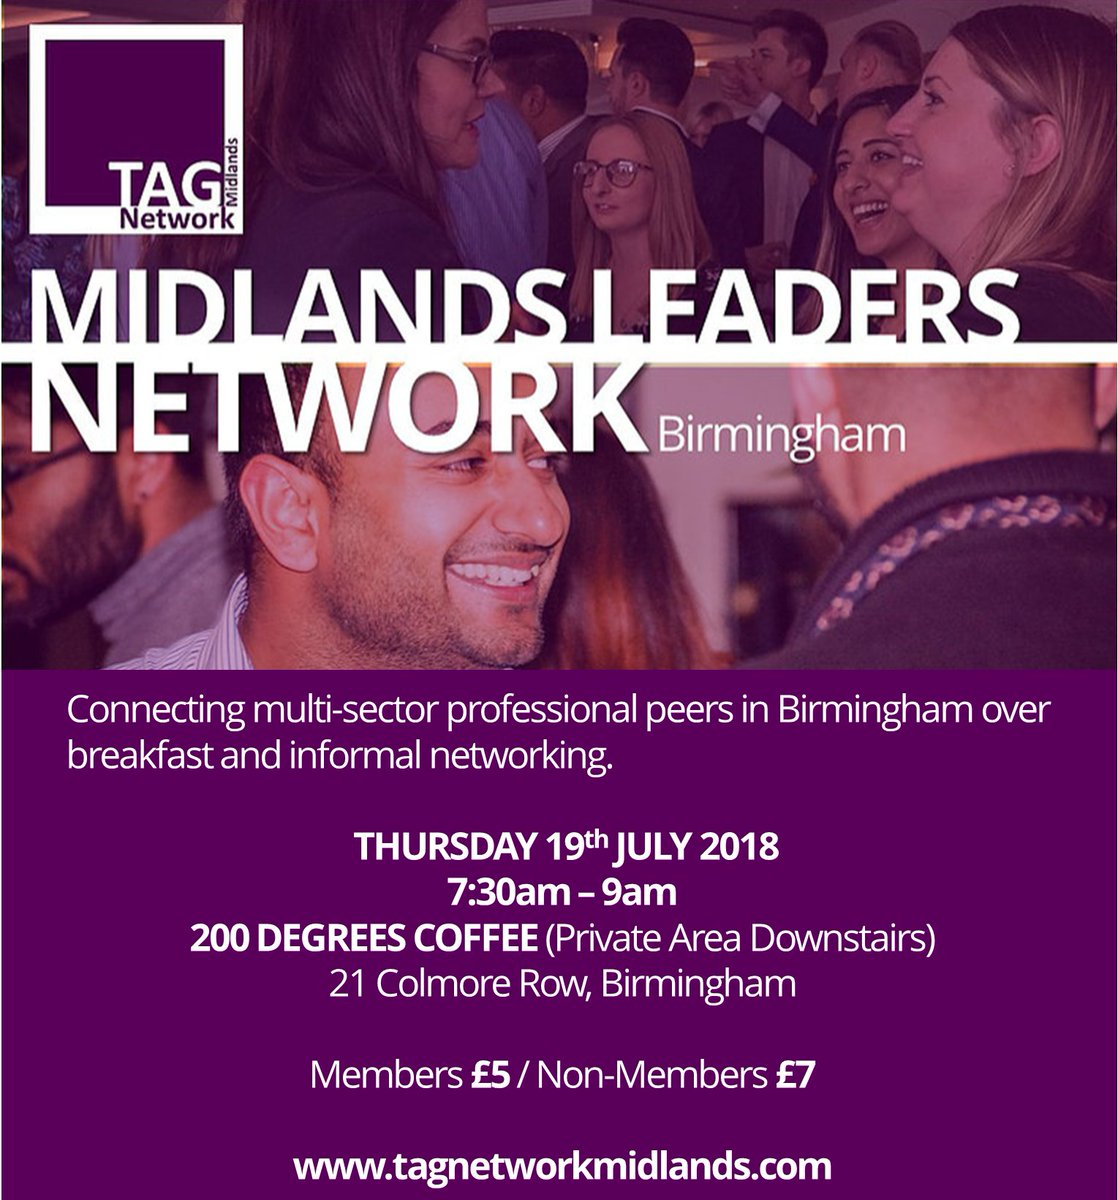 Come along to our #MidlandsLeaders Network Breakfast @200DegsBham &amp; meet multi-sector professionals and leaders over coffee for some pre-work informal networking! Book your place at  http://www. tagnetworkmidlands.com/events  &nbsp;  <br>http://pic.twitter.com/c5dakMQrpW